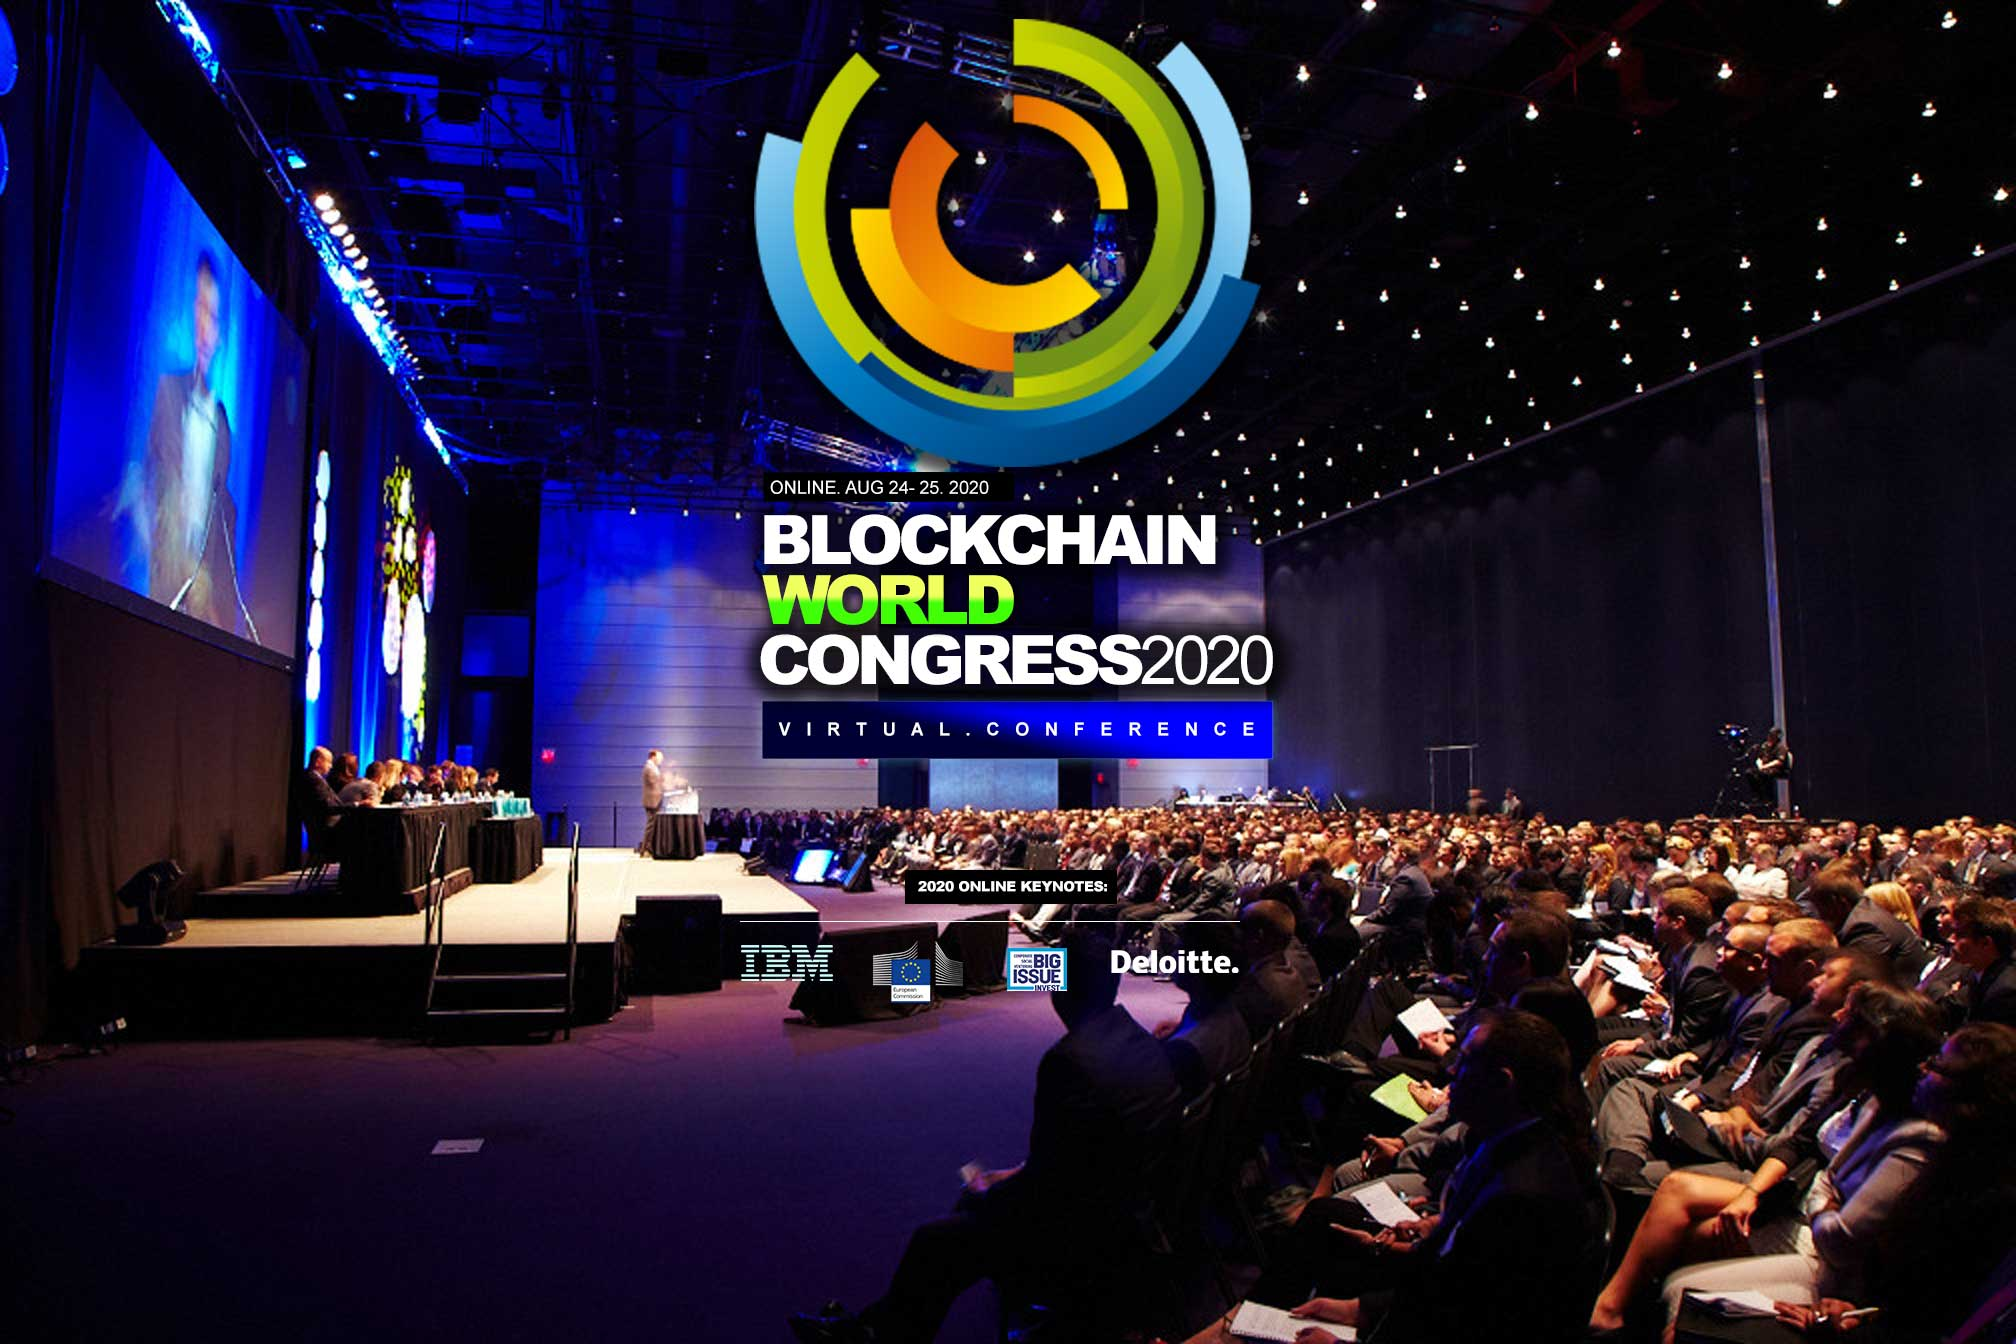 Blockchain Conference - Blockchain World Congress 2020. Virtual Blockchain Conference